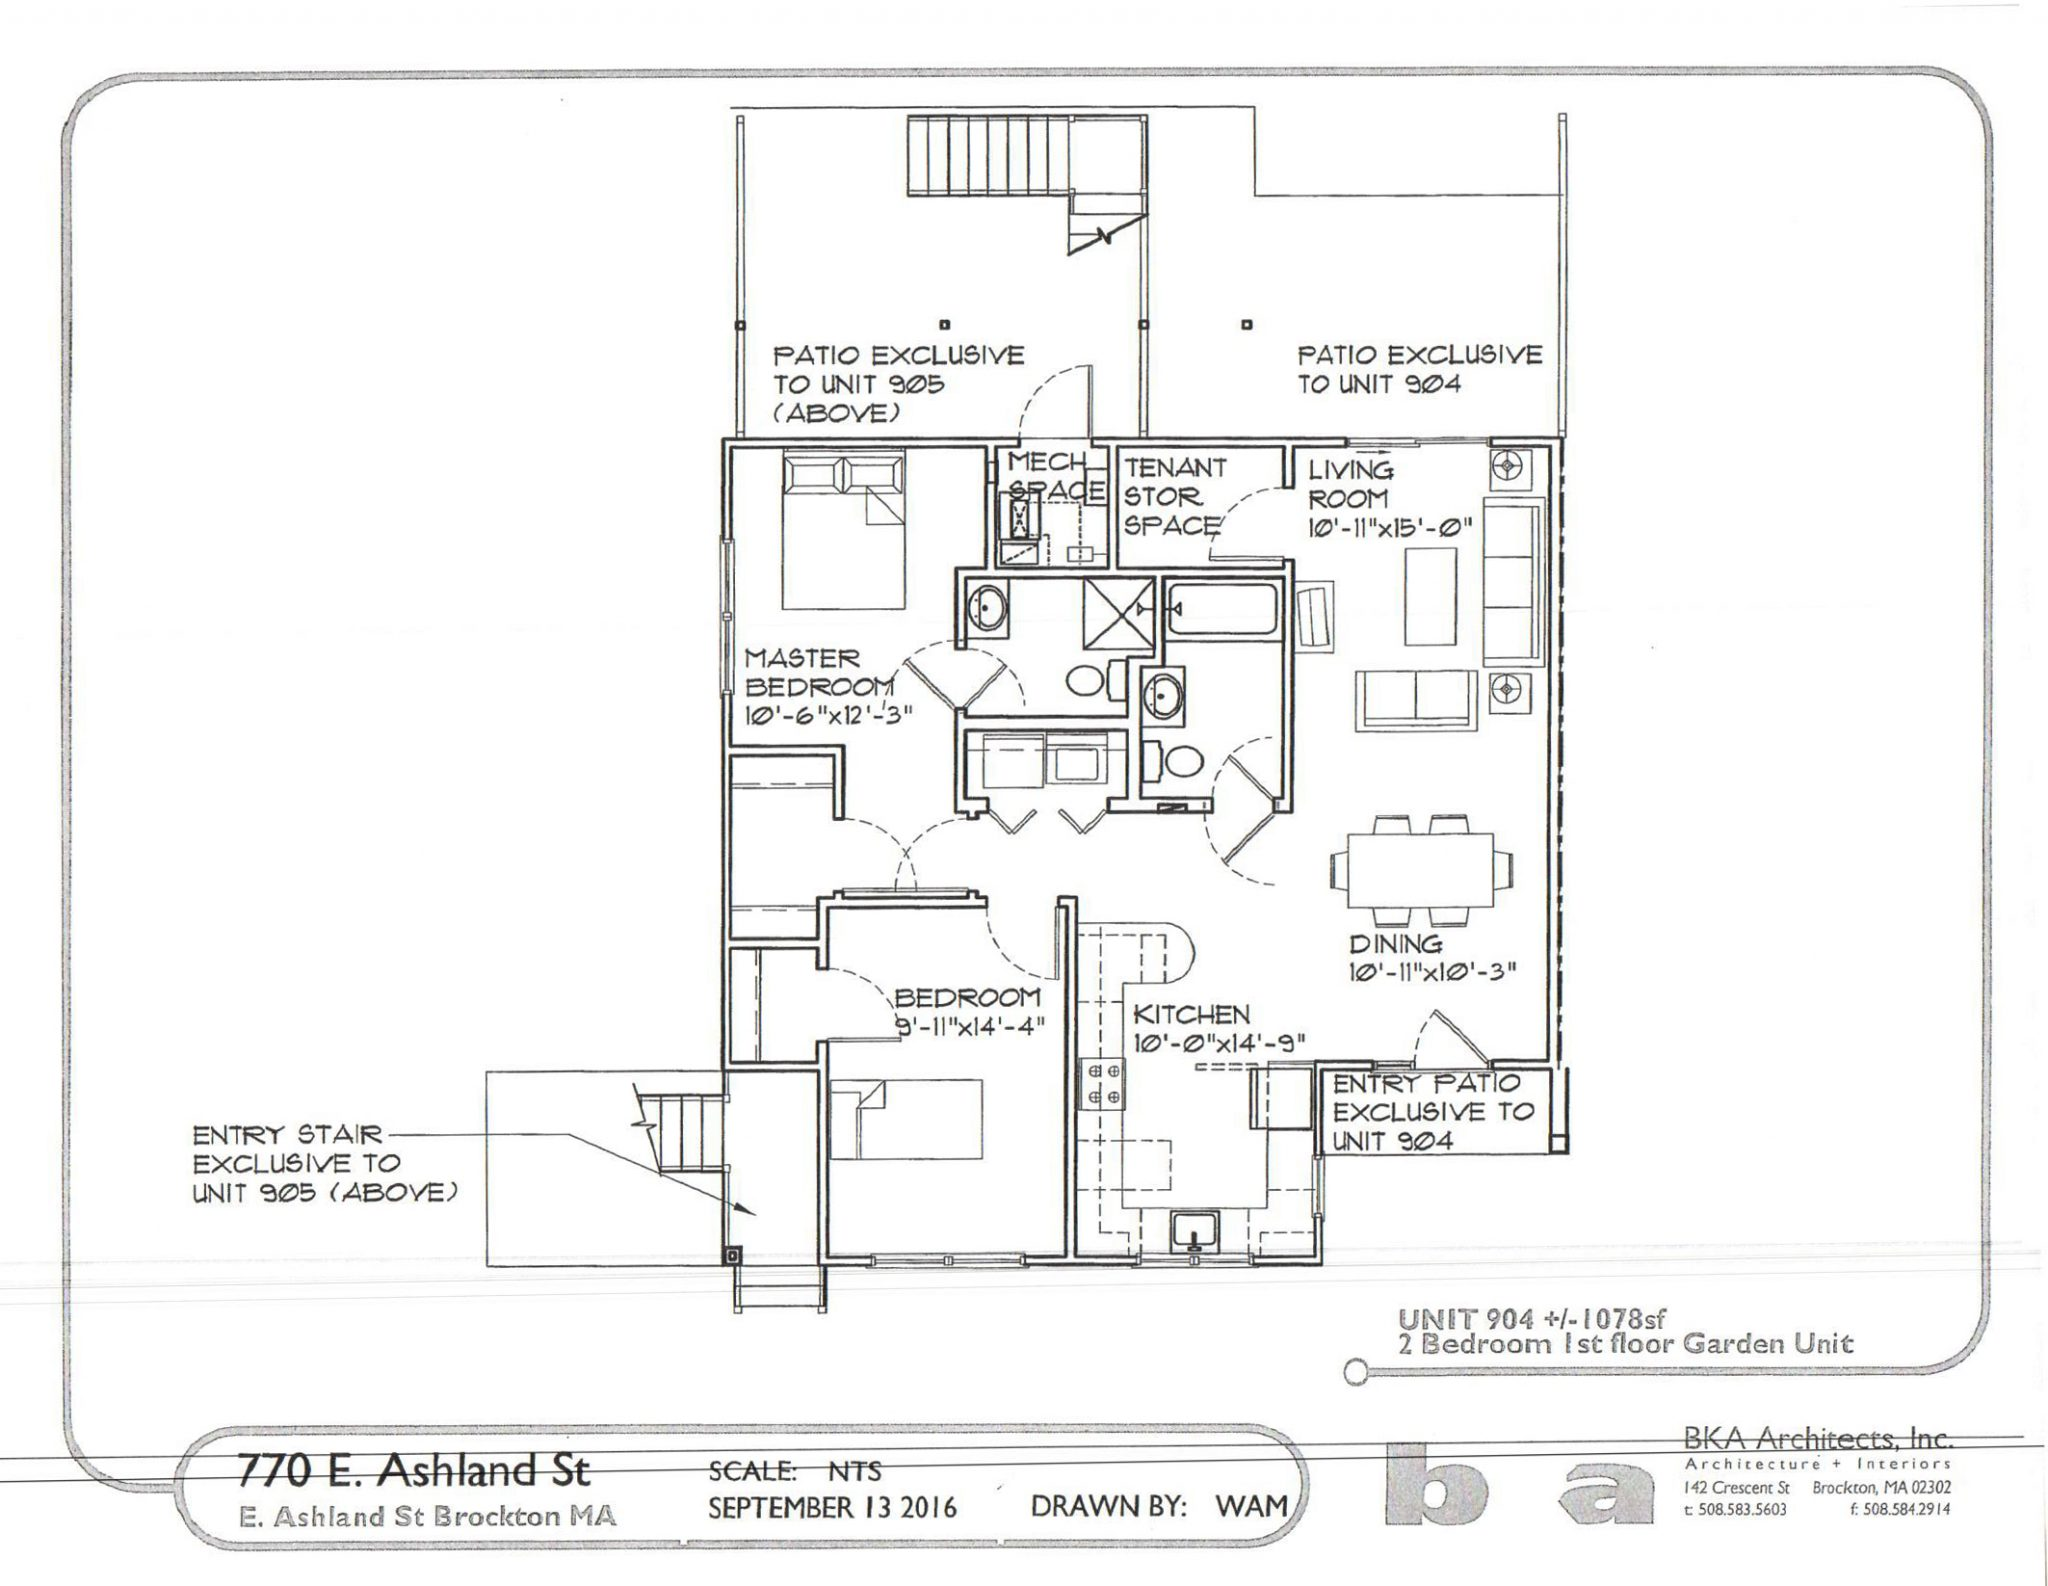 Parkside 2 Floor Plans_Page_1_Image_0001_DS